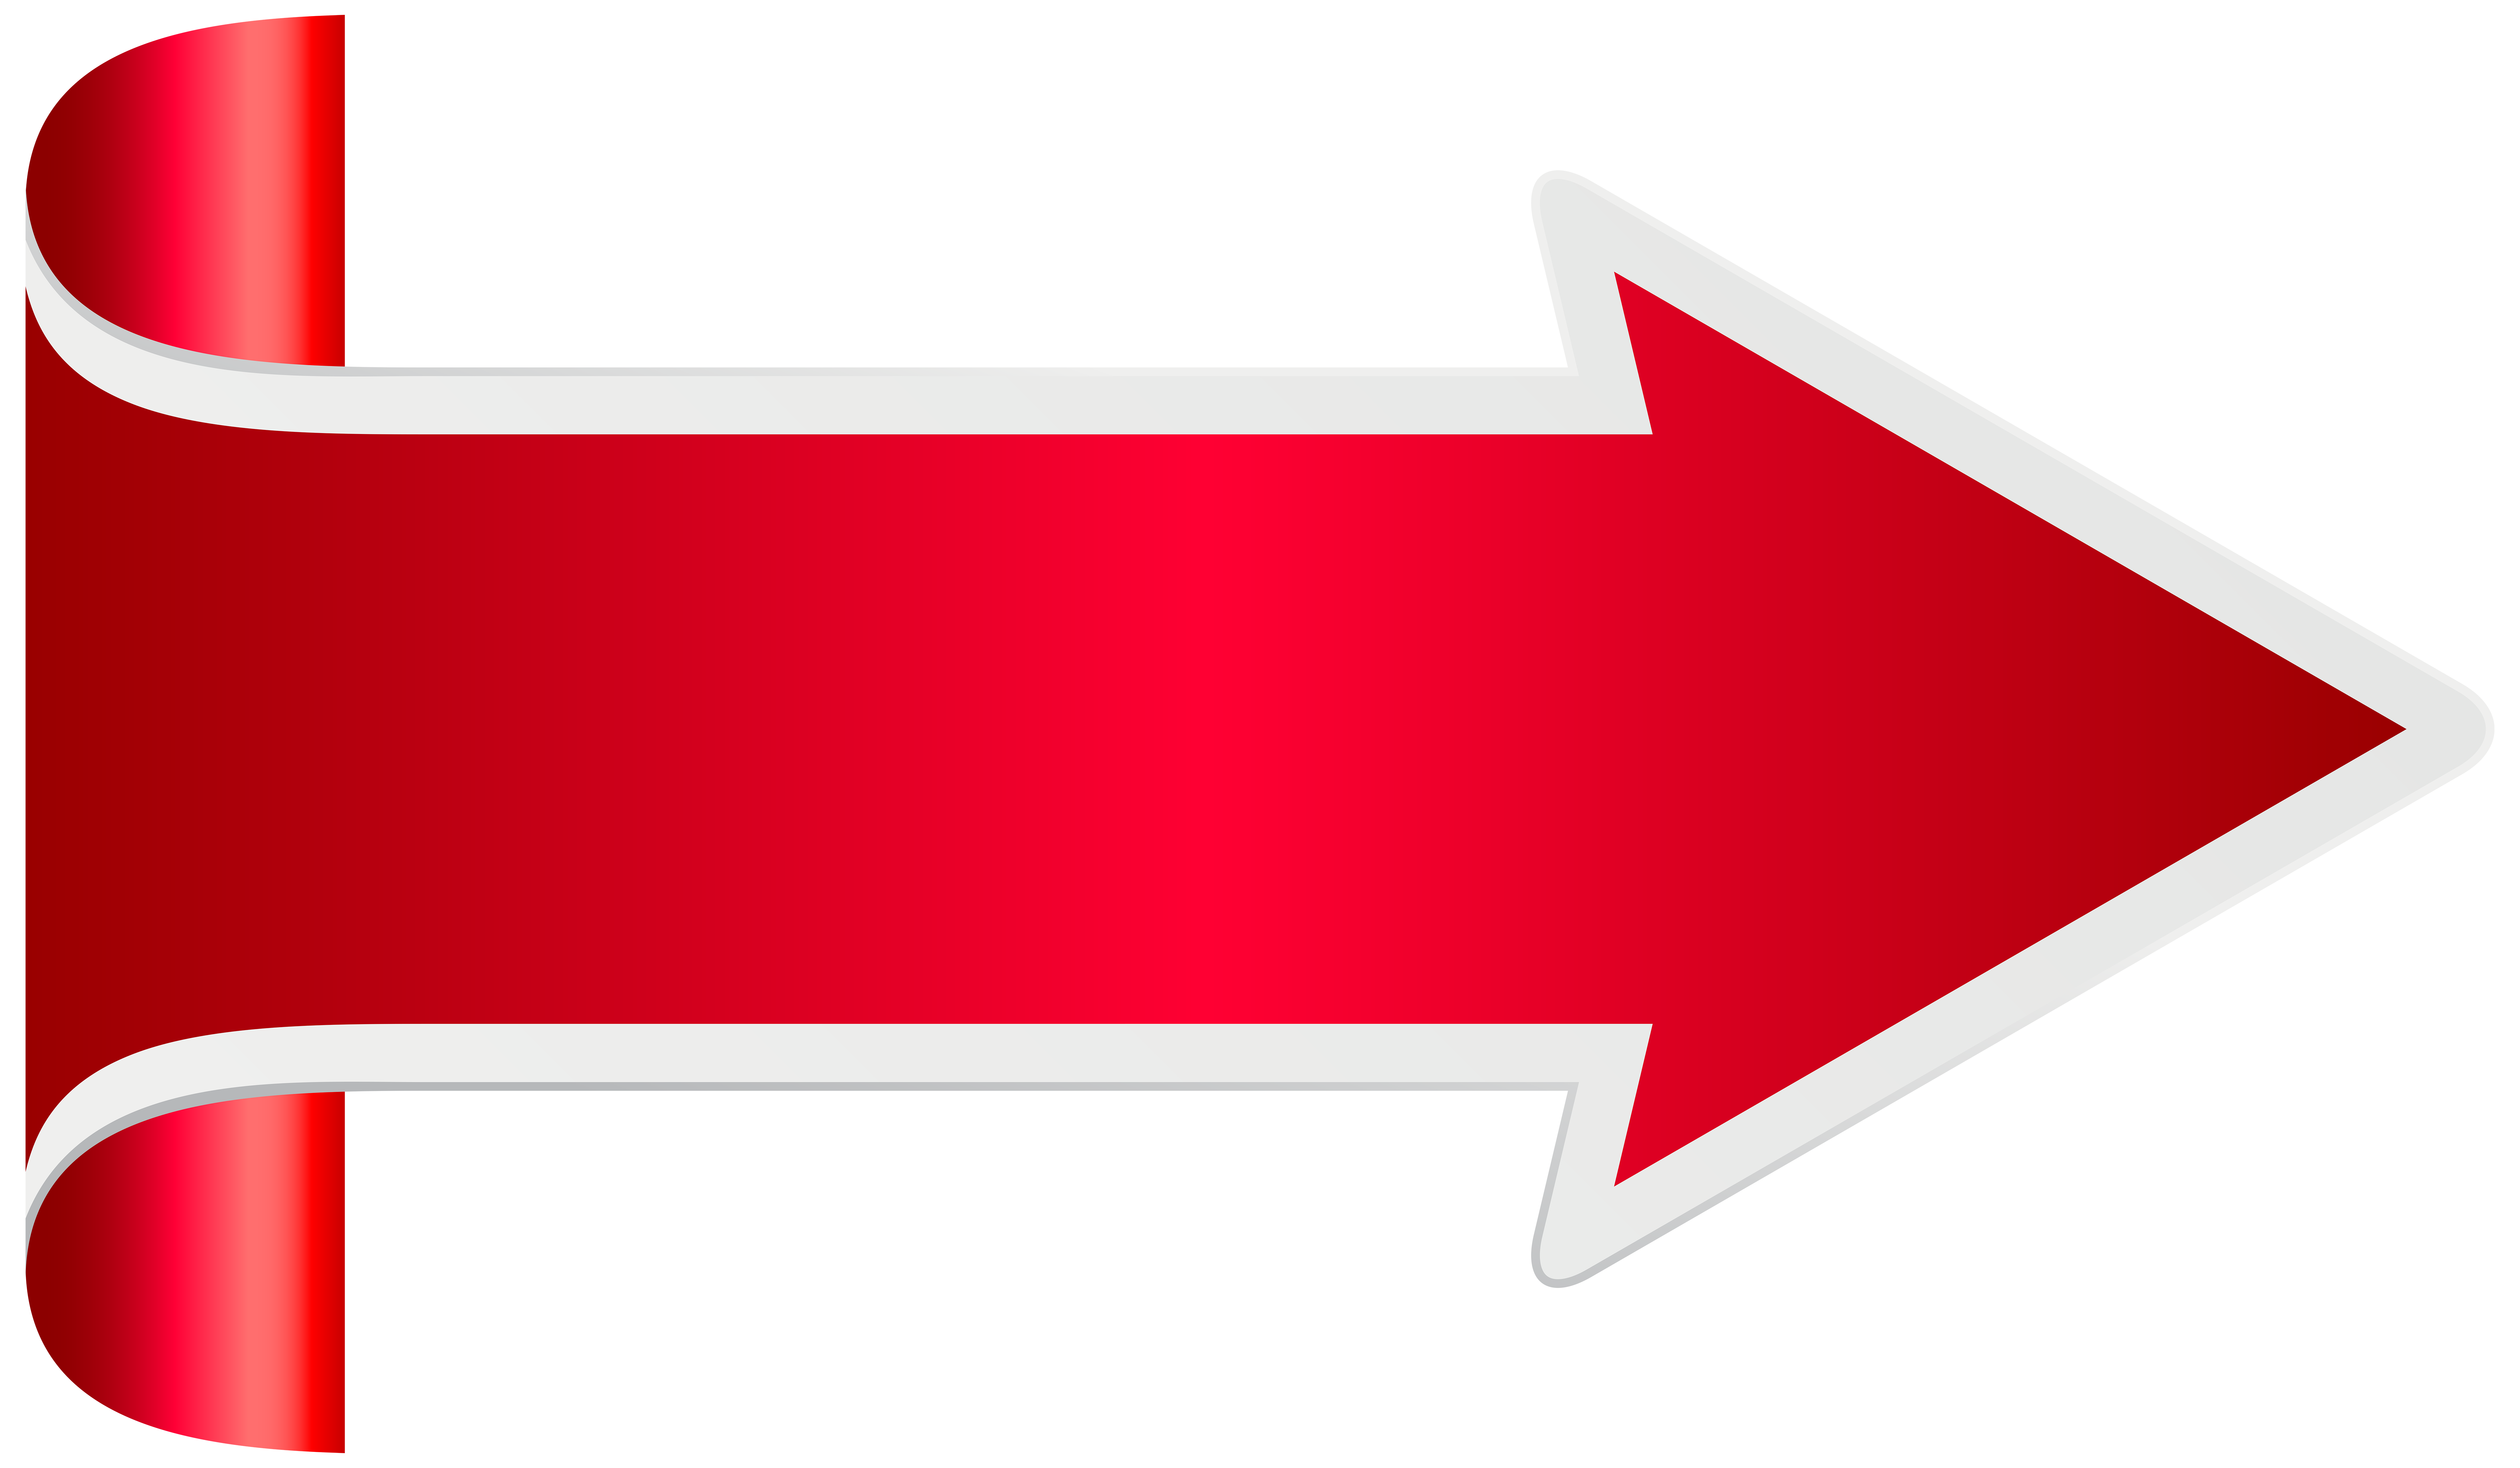 png library Arrow png clip art. Red arrows clipart.